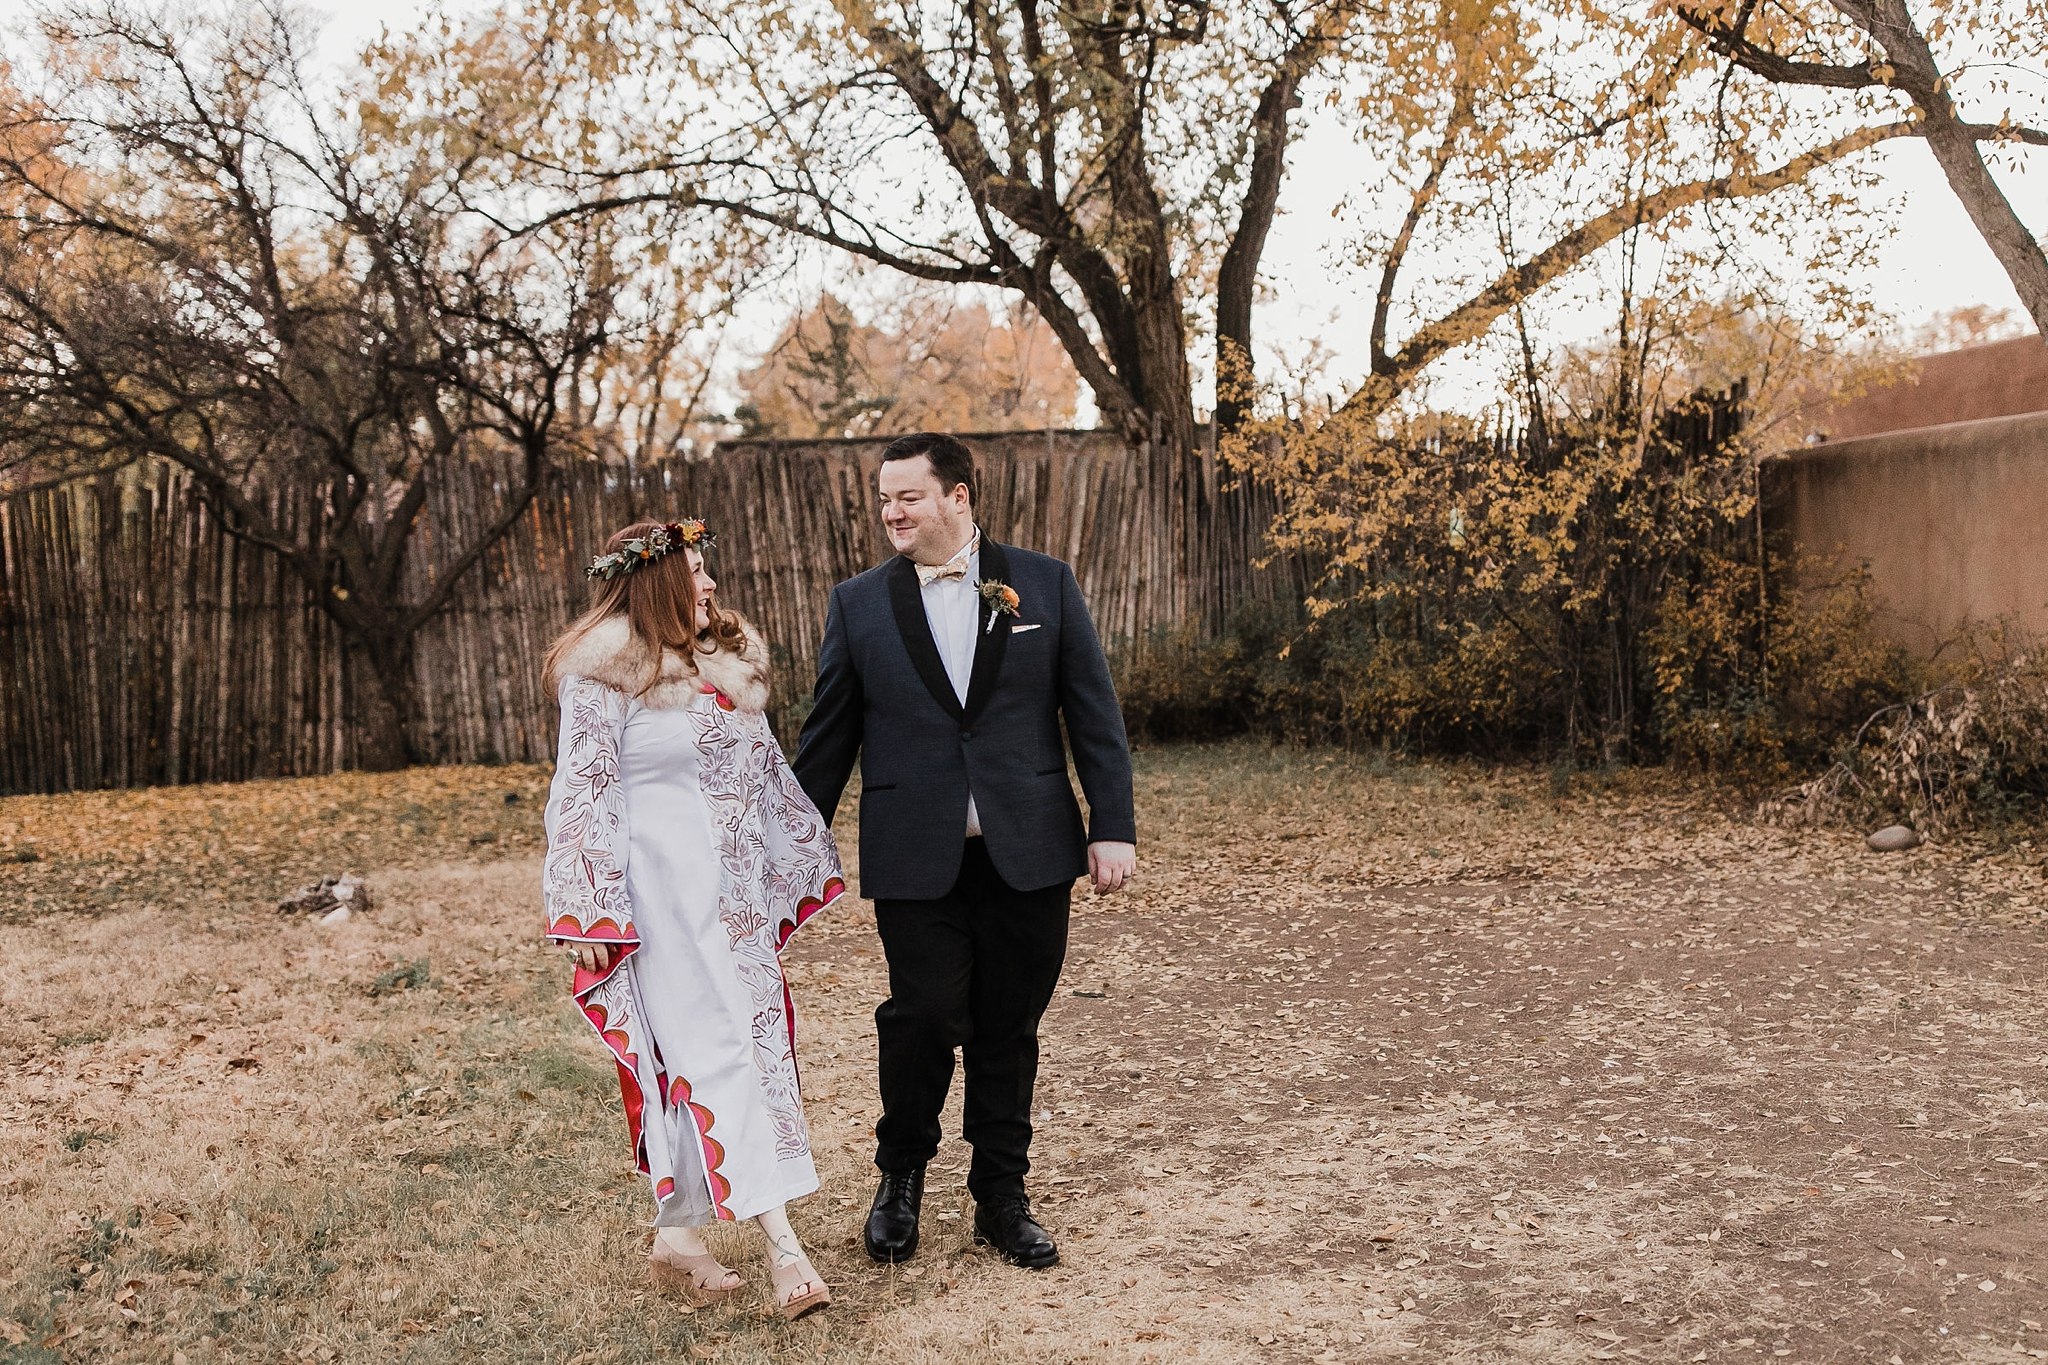 Alicia+lucia+photography+-+albuquerque+wedding+photographer+-+santa+fe+wedding+photography+-+new+mexico+wedding+photographer+-+albuquerque+wedding+-+santa+fe+wedding+-+wedding+gowns+-+non+traditional+wedding+gowns_0028.jpg